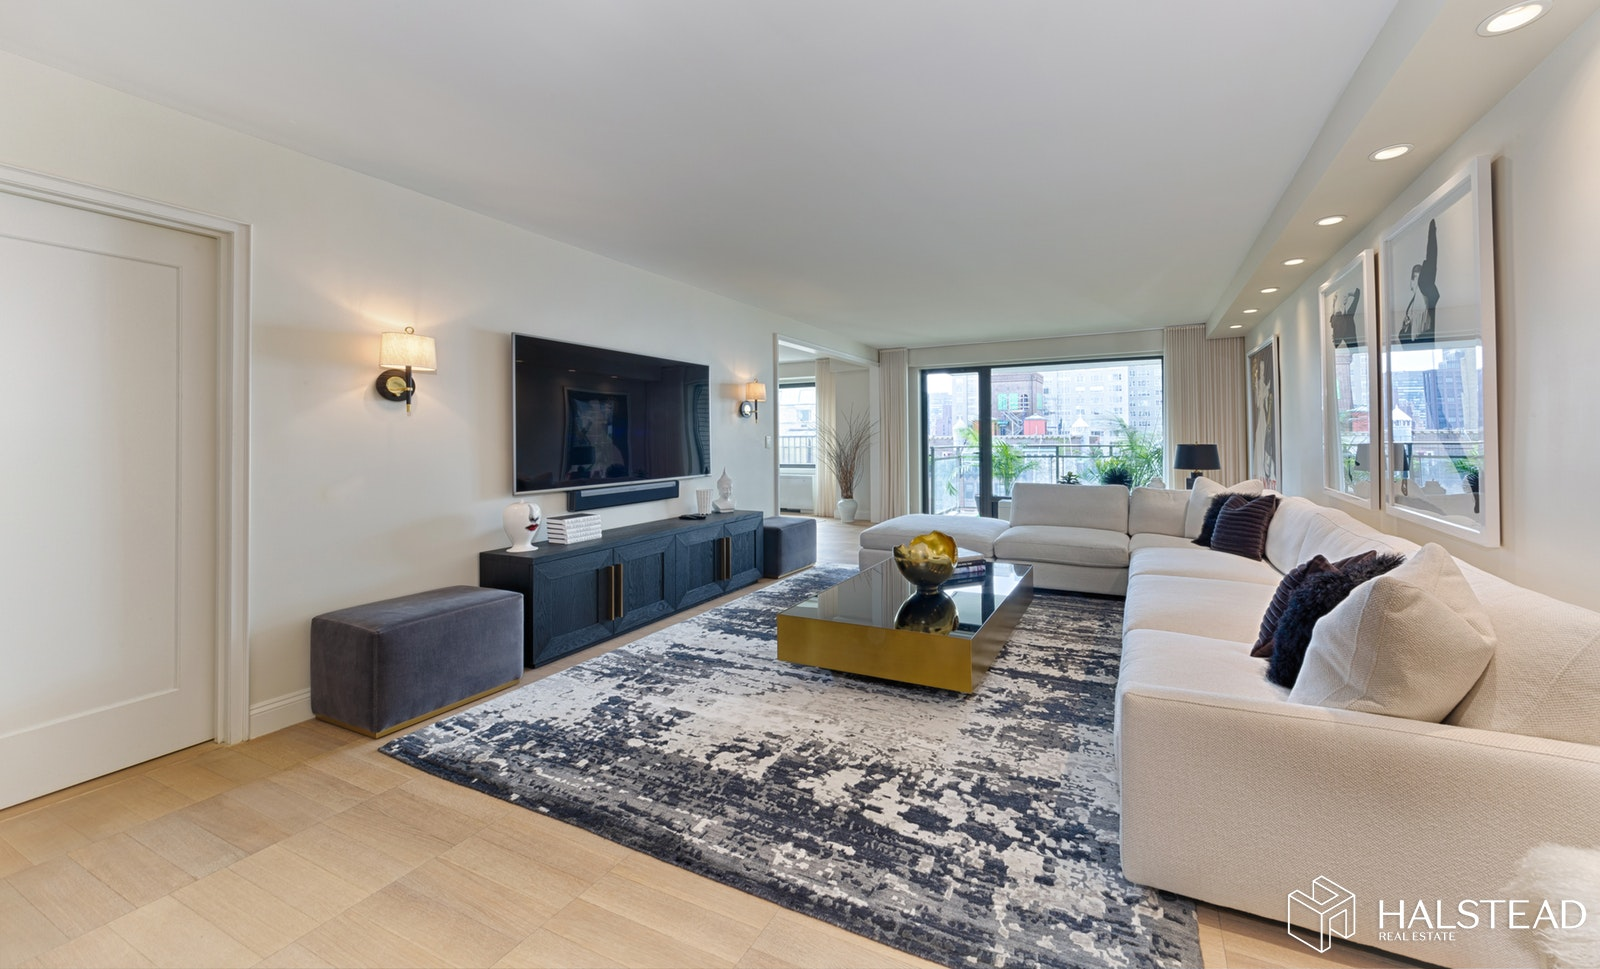 303 East 57th Street 17l, Midtown East, NYC, 10022, $1,395,000, Property For Sale, Halstead Real Estate, Photo 1